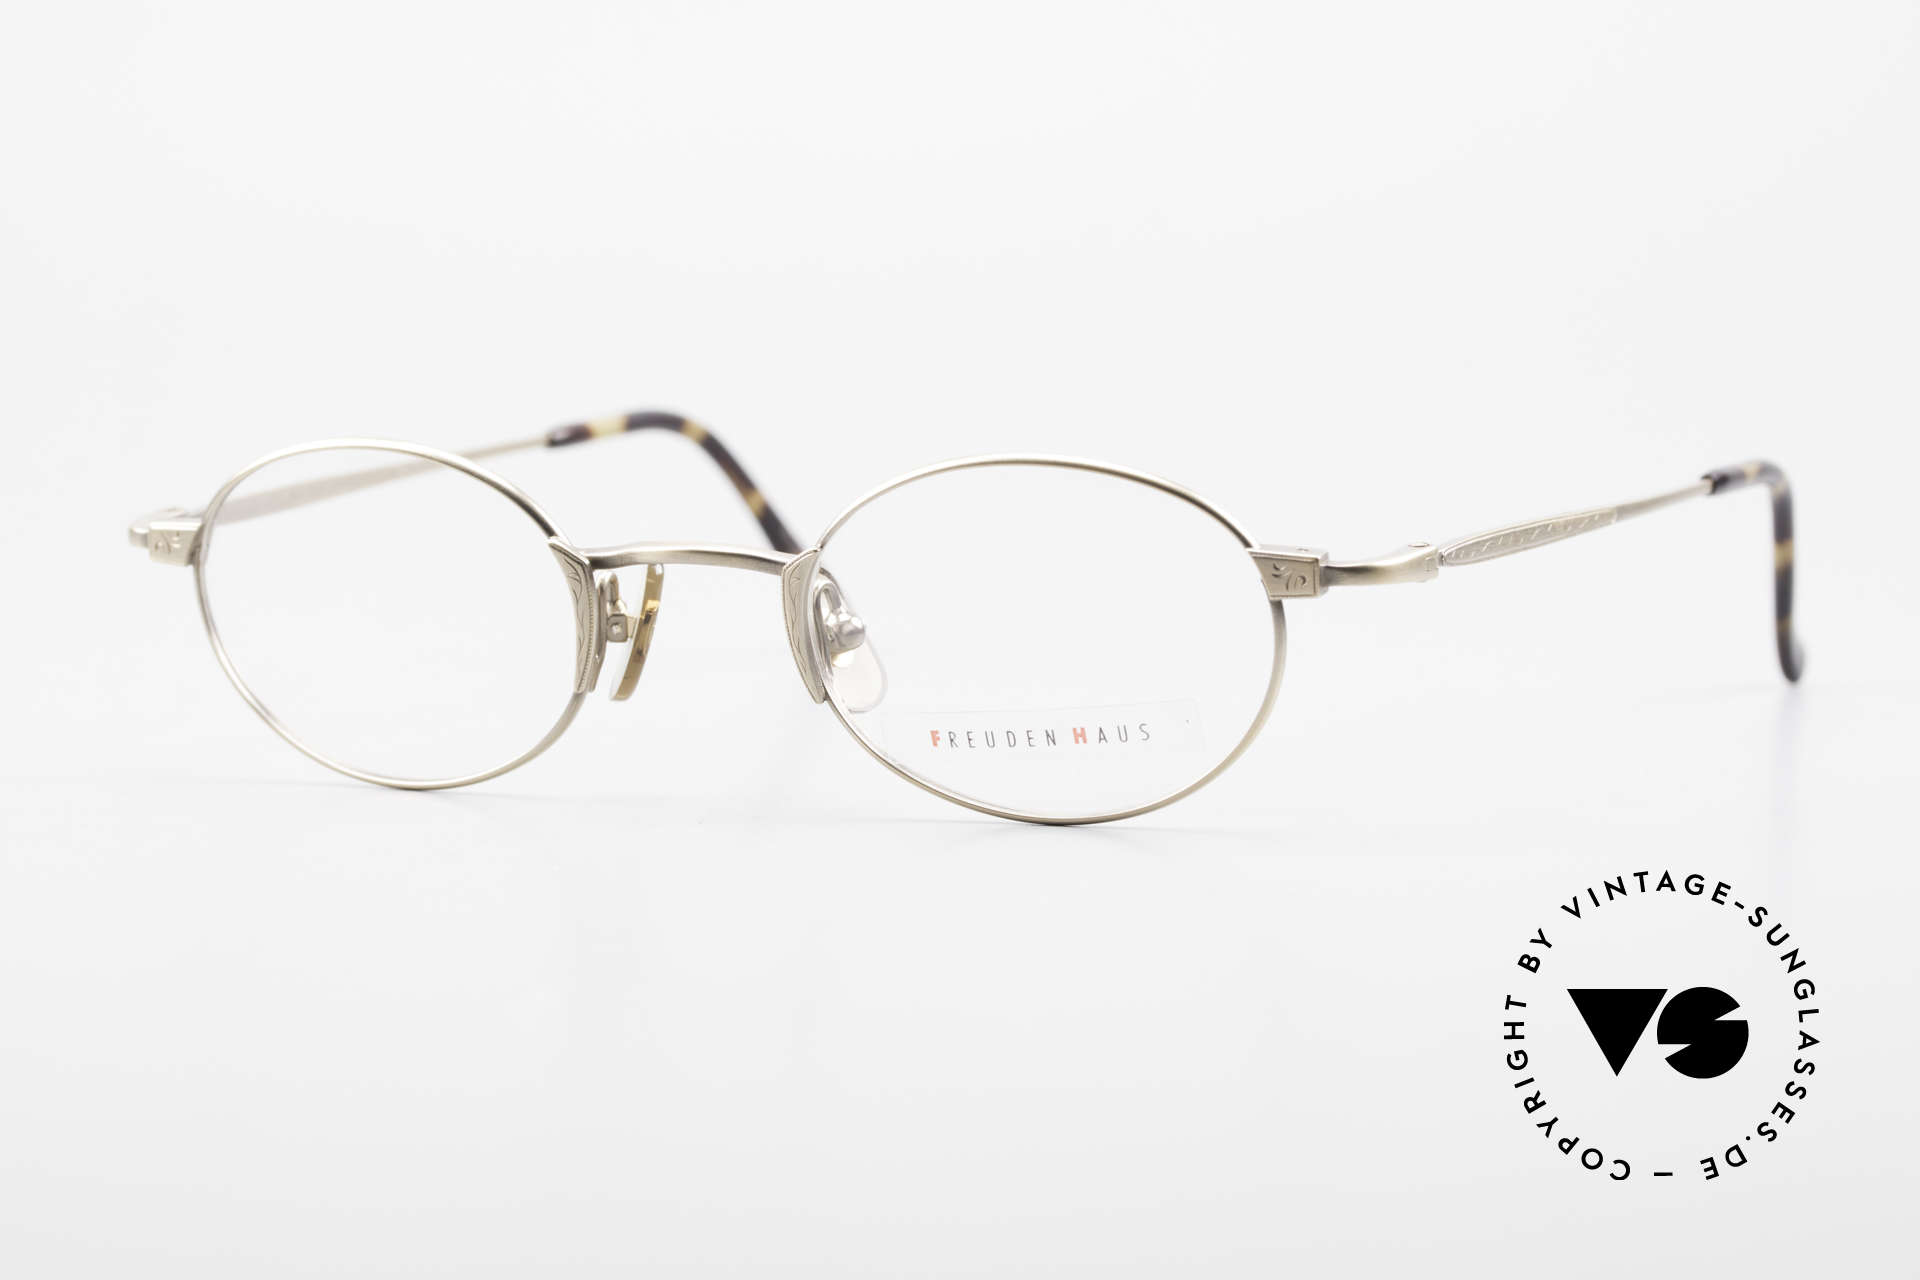 Freudenhaus Zaki Oval Titan Vintage Glasses, vintage designer glasses by FREUDENHAUS, Munich, Made for Men and Women